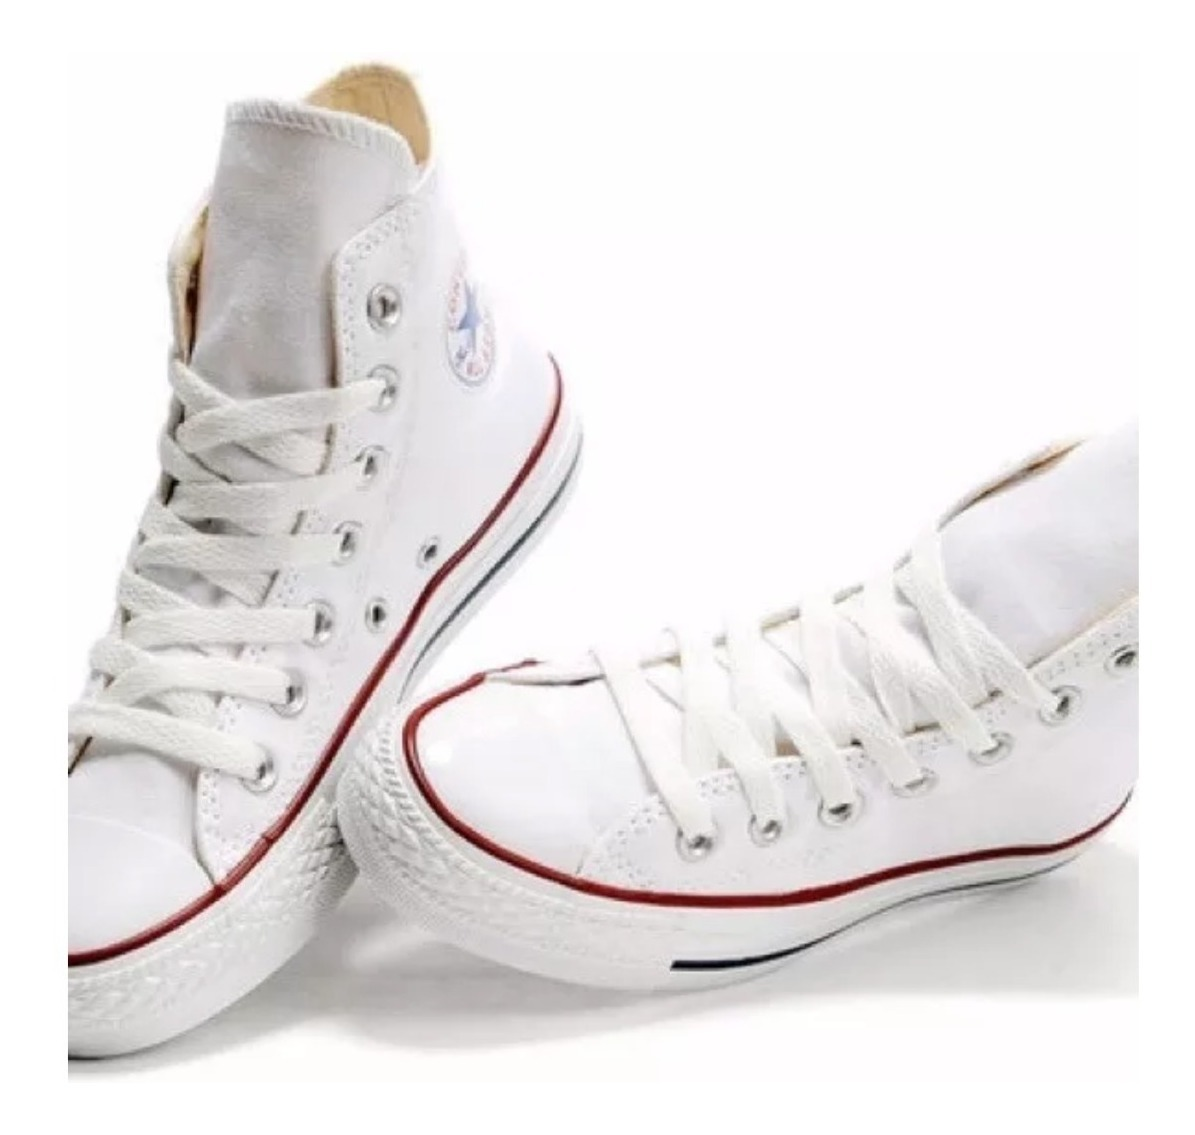 converse chuck taylor all star blanco originales